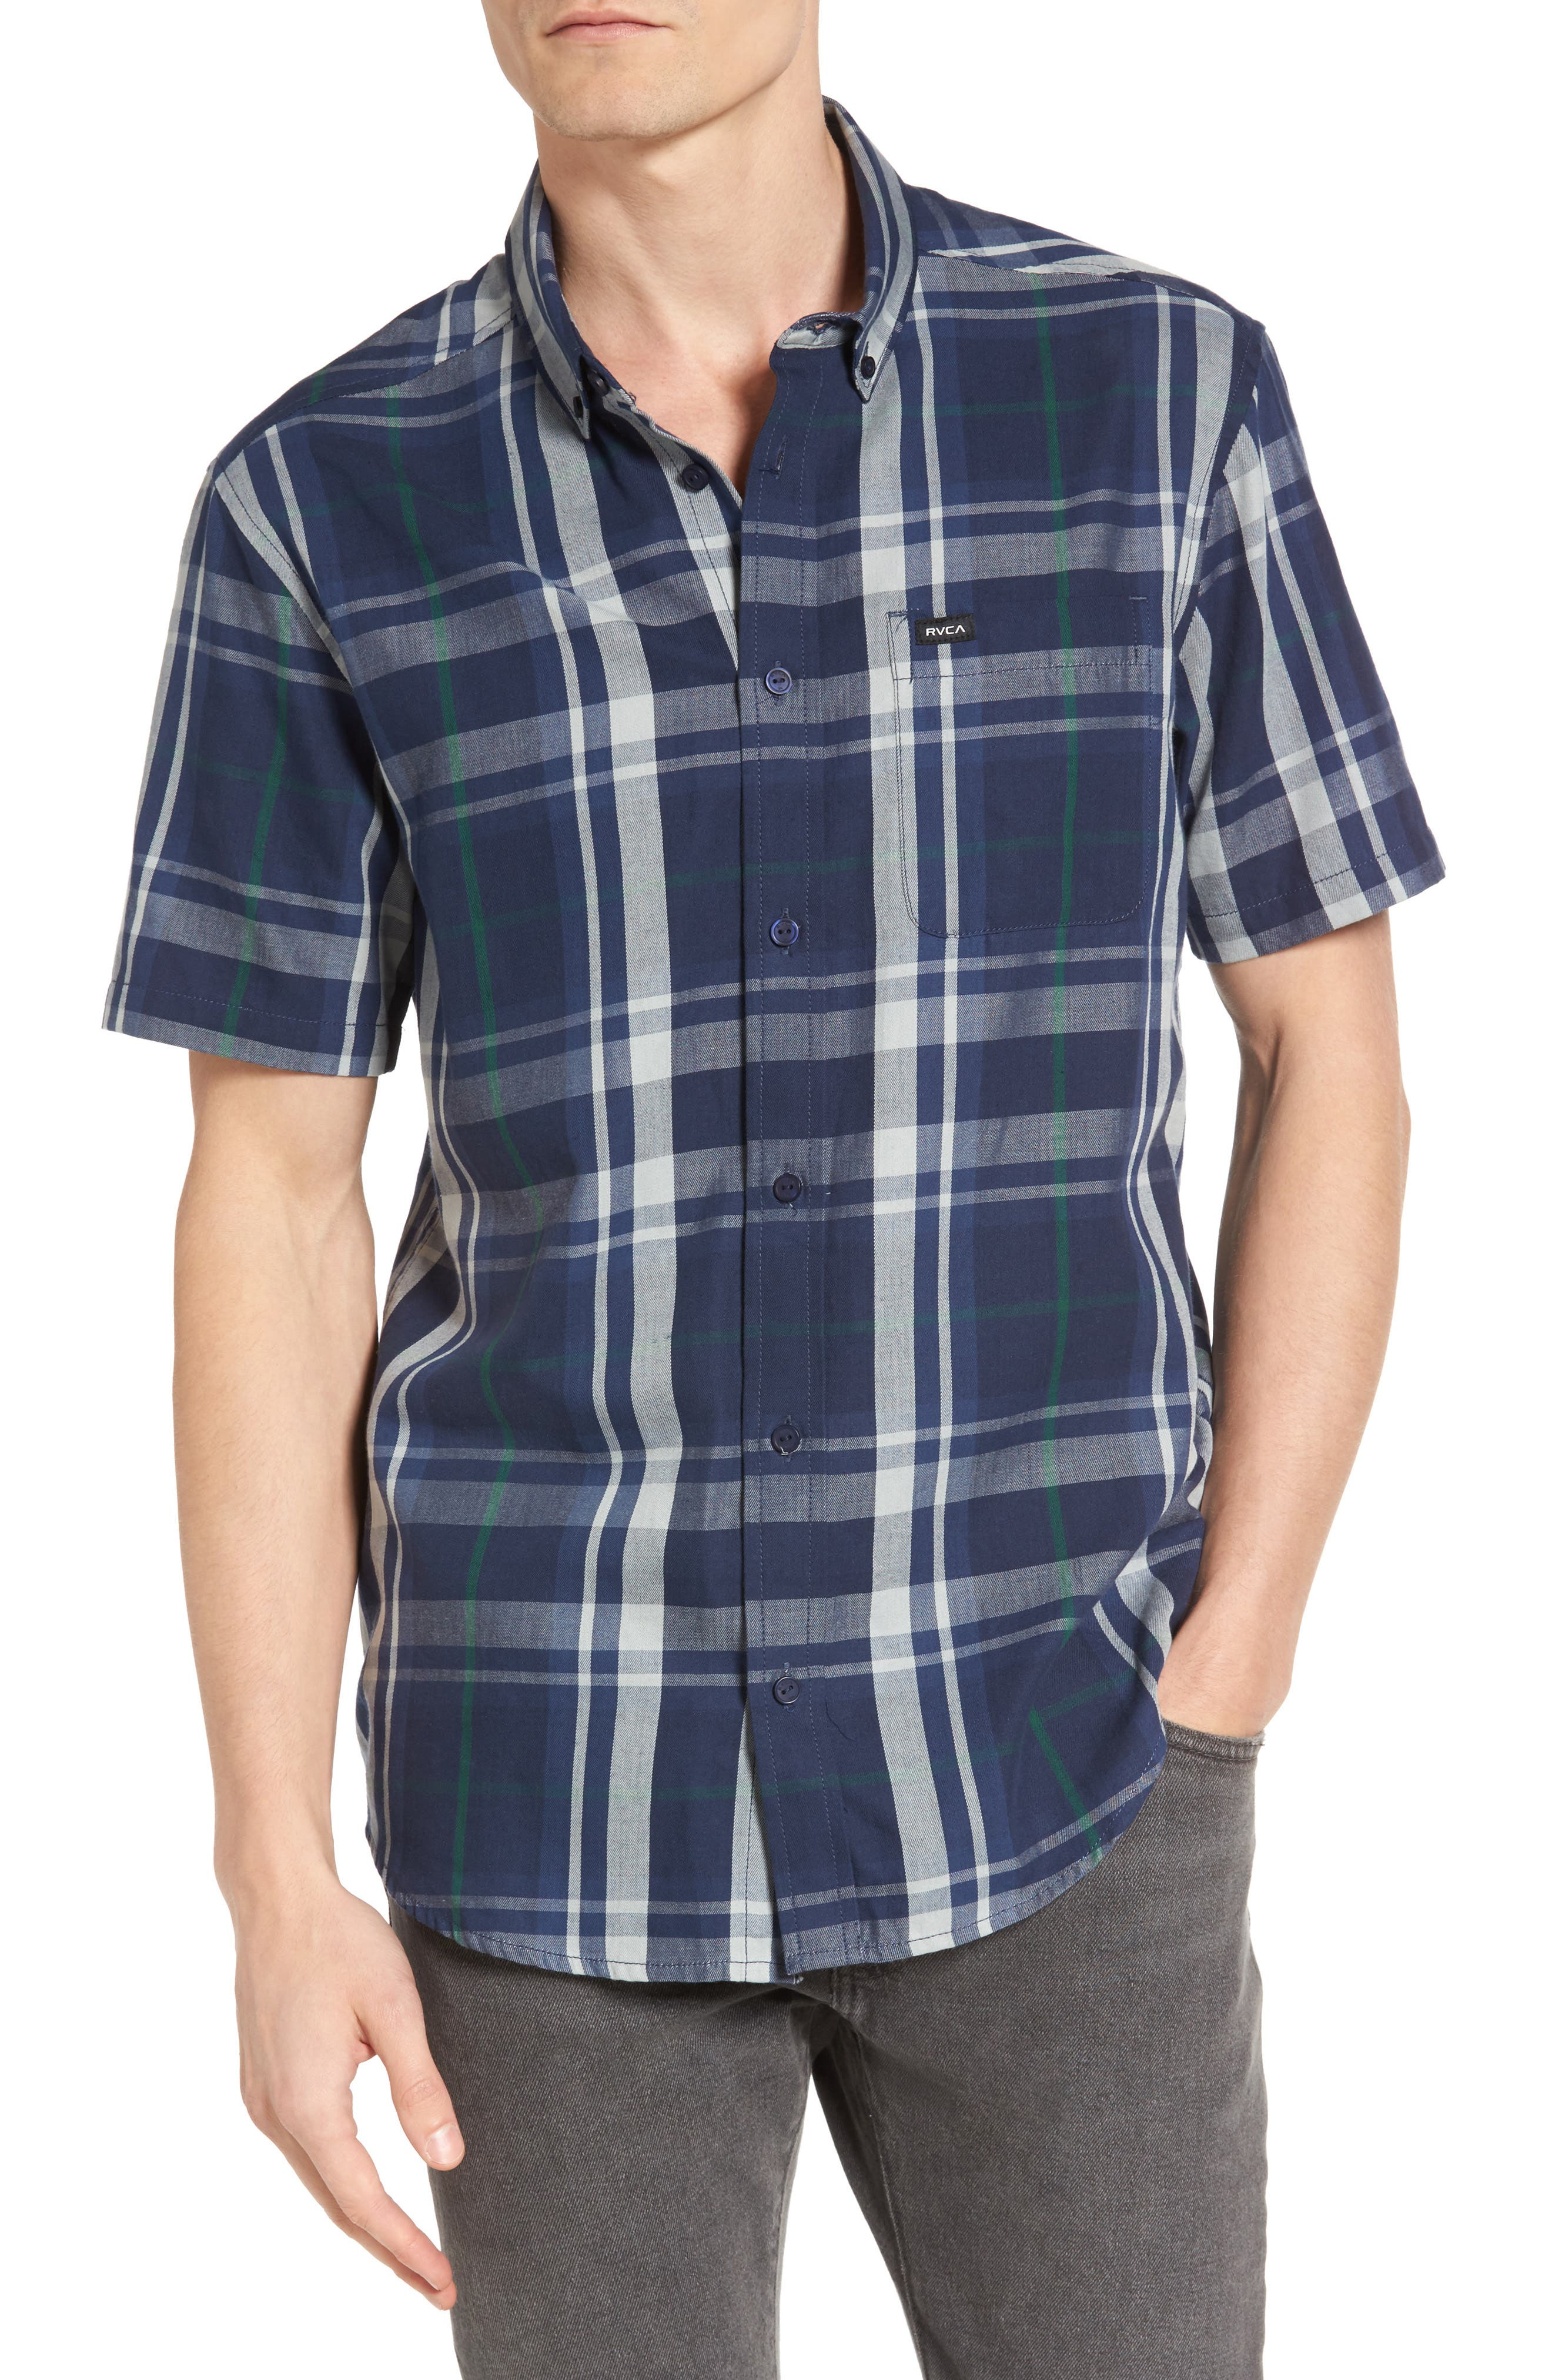 Alternate Image 1 Selected - RVCA Waas 2 Plaid Woven Shirt